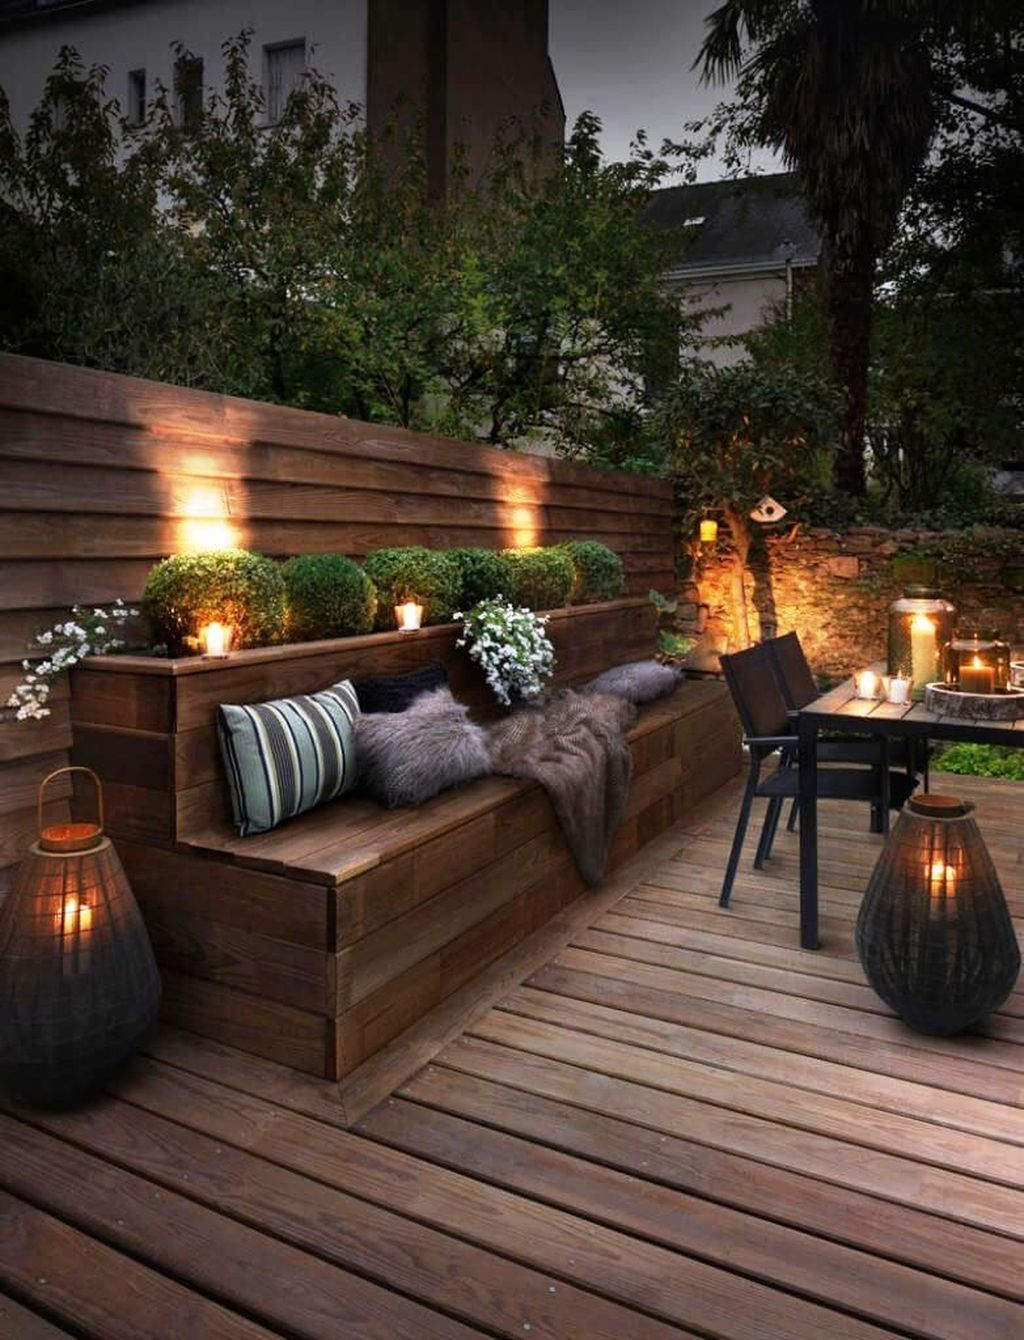 33 Stylish Outdoor Lighting Designs Ideas For Backyard #landscapelightingdesign